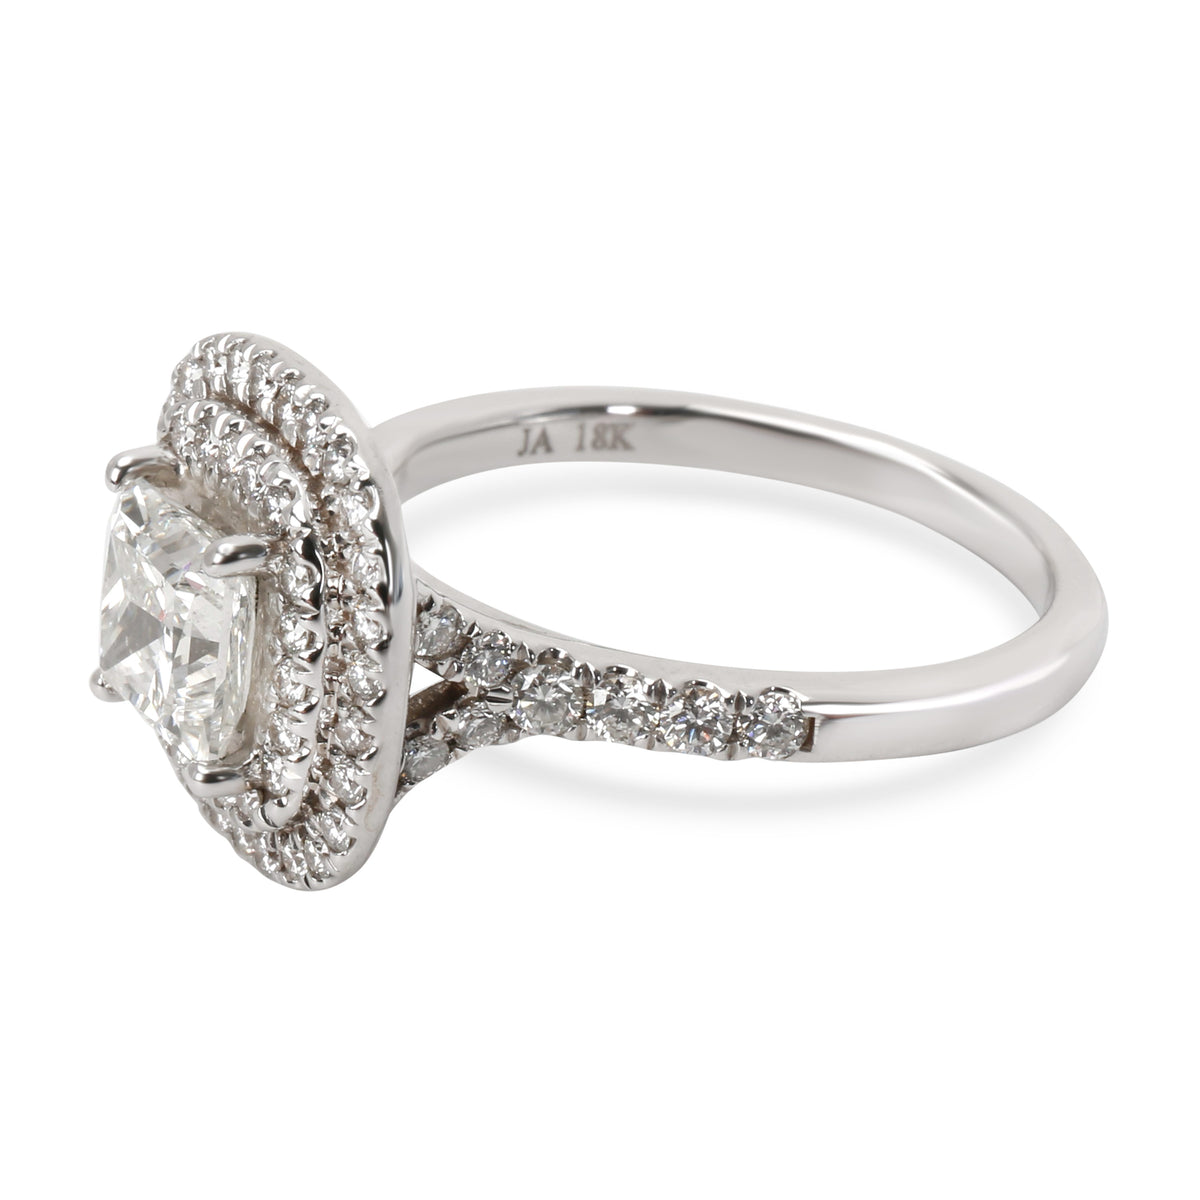 James Allen Halo Diamond Engagement Ring in 18K White Gold GIA I SI1 1.82 CTW